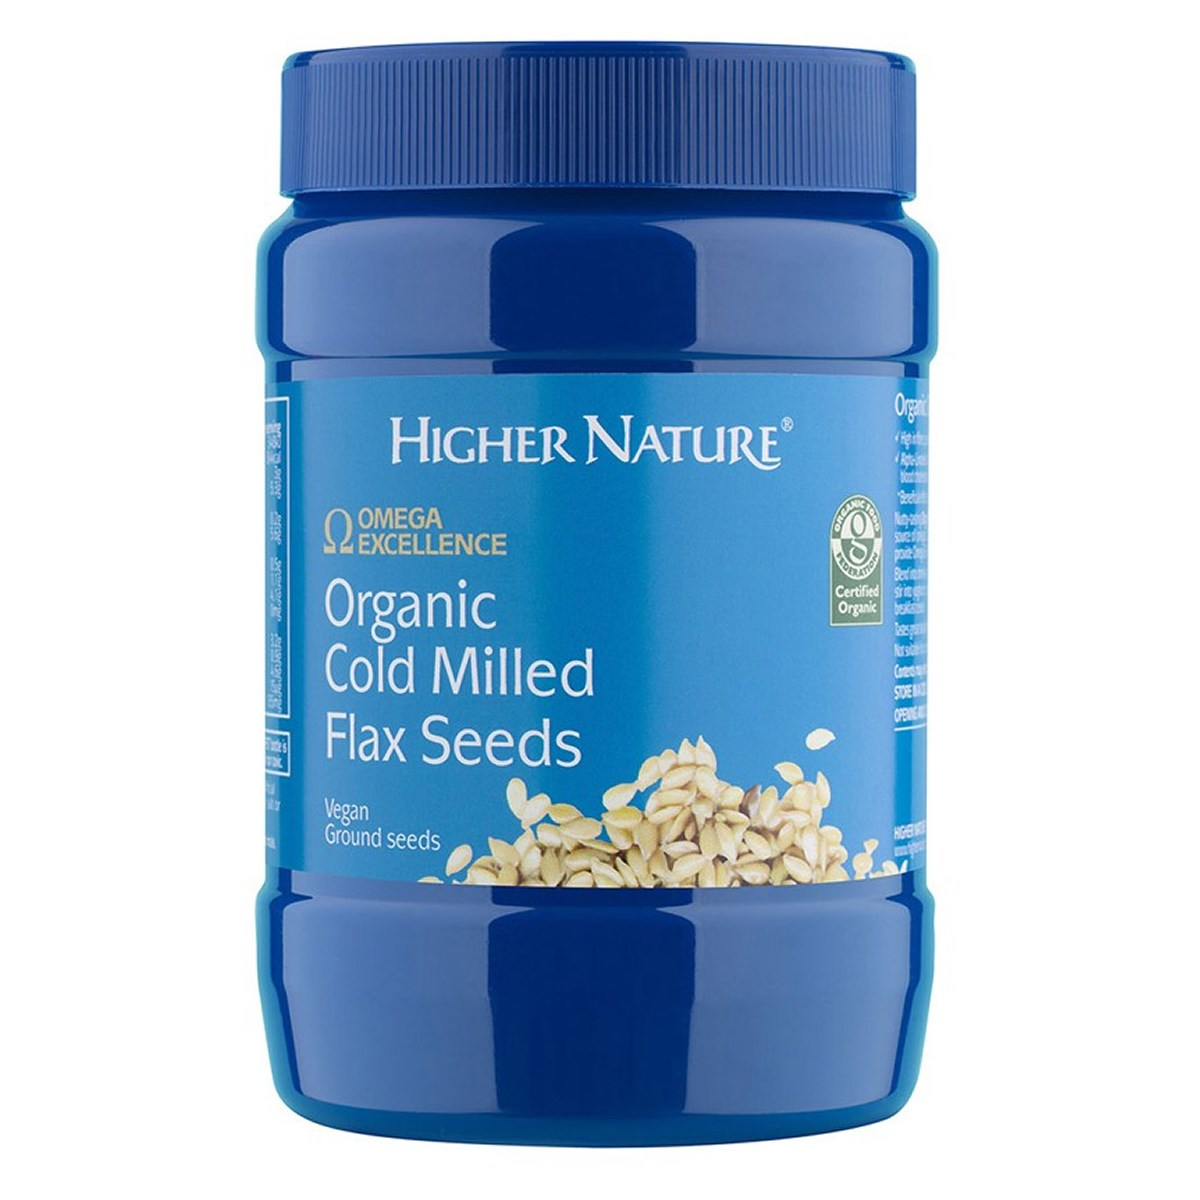 Higher Nature Organic Cold Milled Flax Seeds